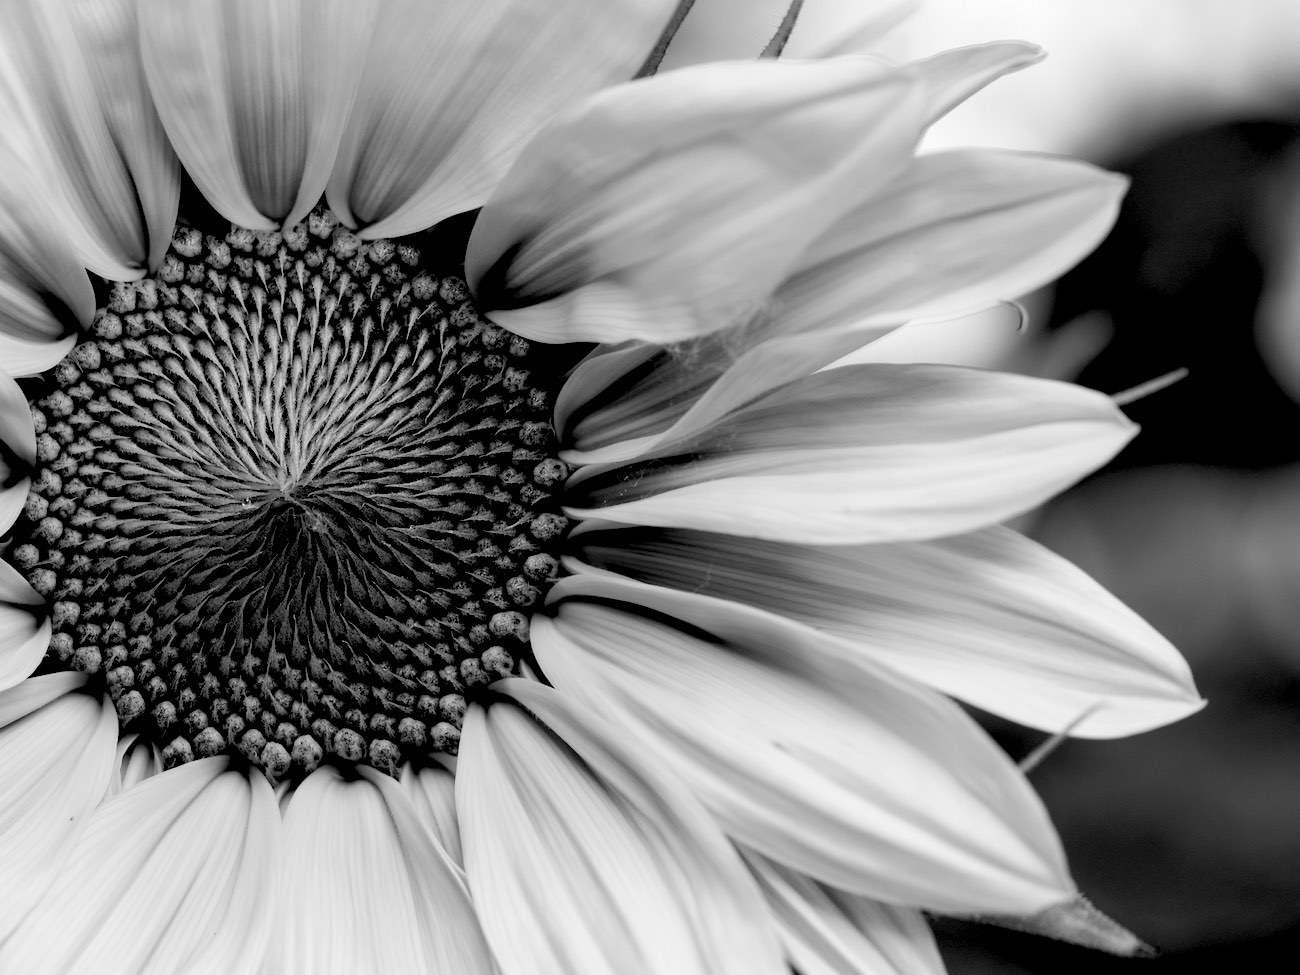 Coaching outdoors - image of a flower and petals